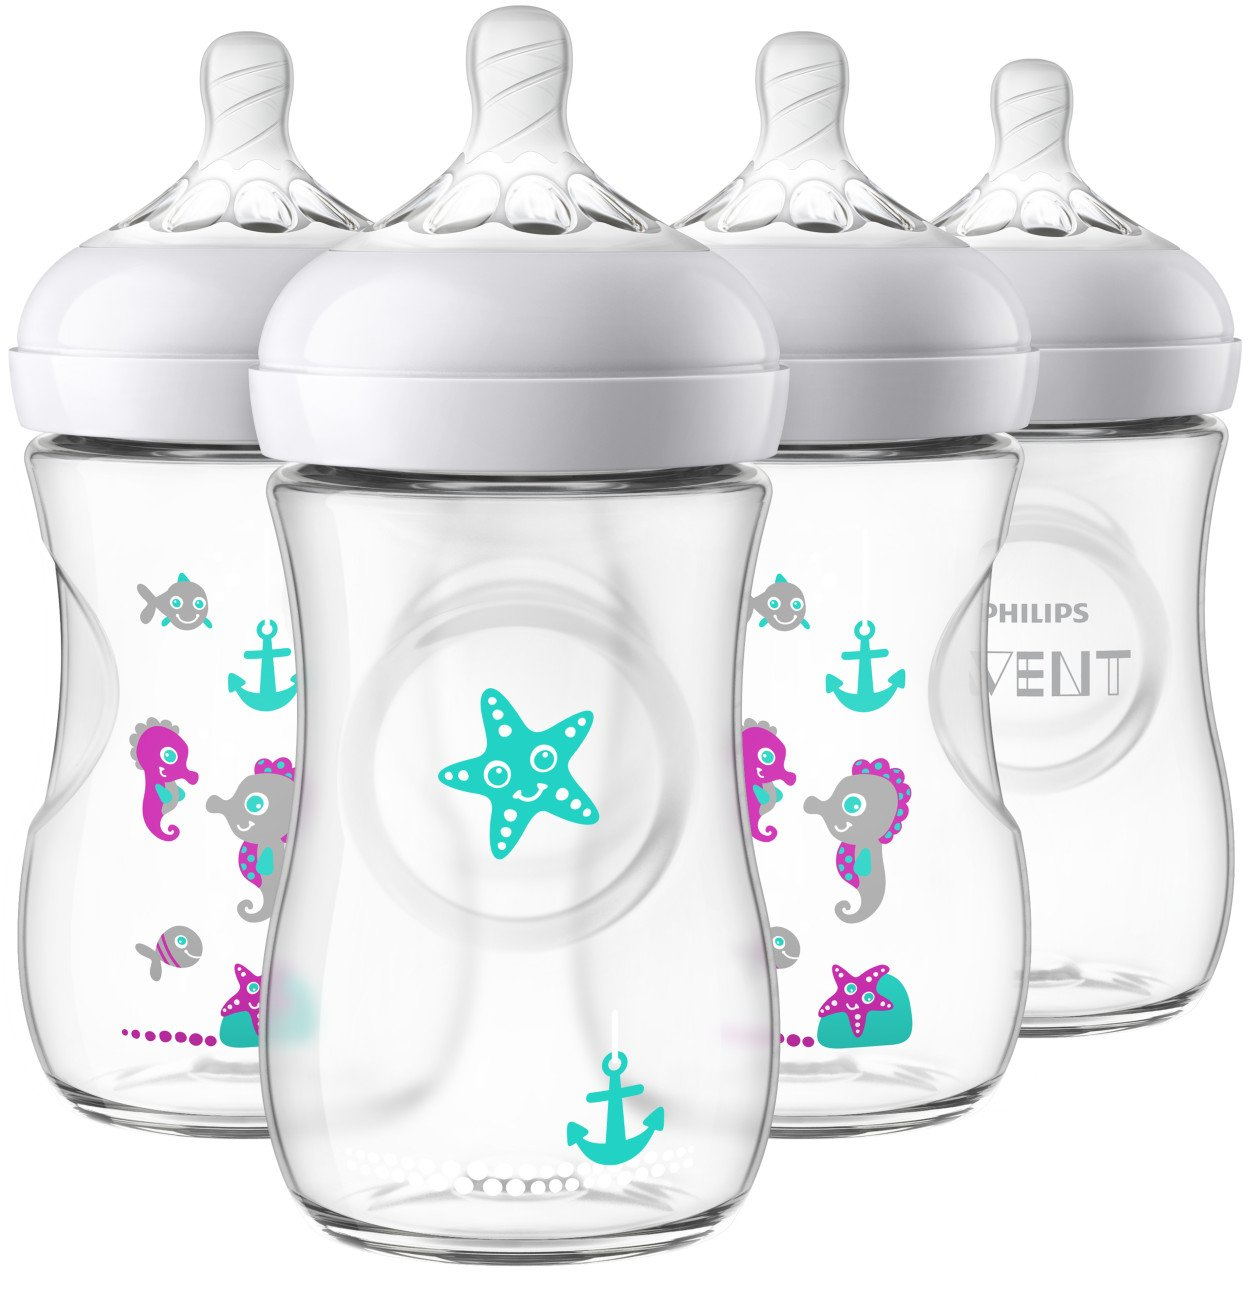 Philips Avent Natural Baby Bottle with Seahorse design, 9oz, 4pk, SCF659/47 075020068569